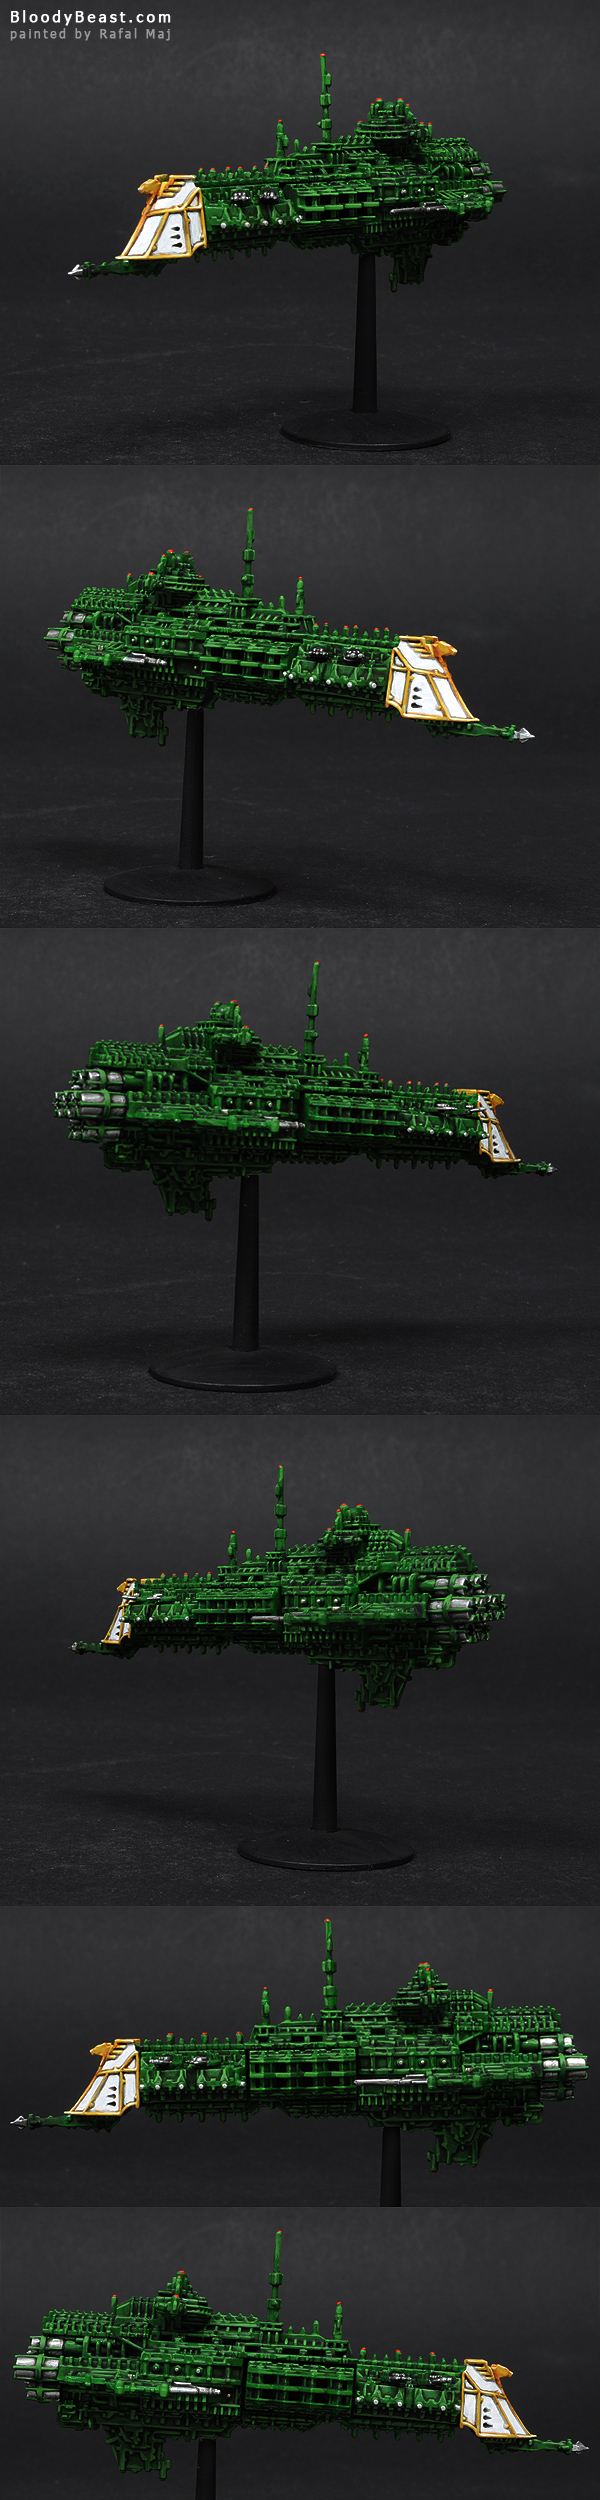 Battlefleet Gothic Imperial Crusier painted by Rafal Maj (BloodyBeast.com)